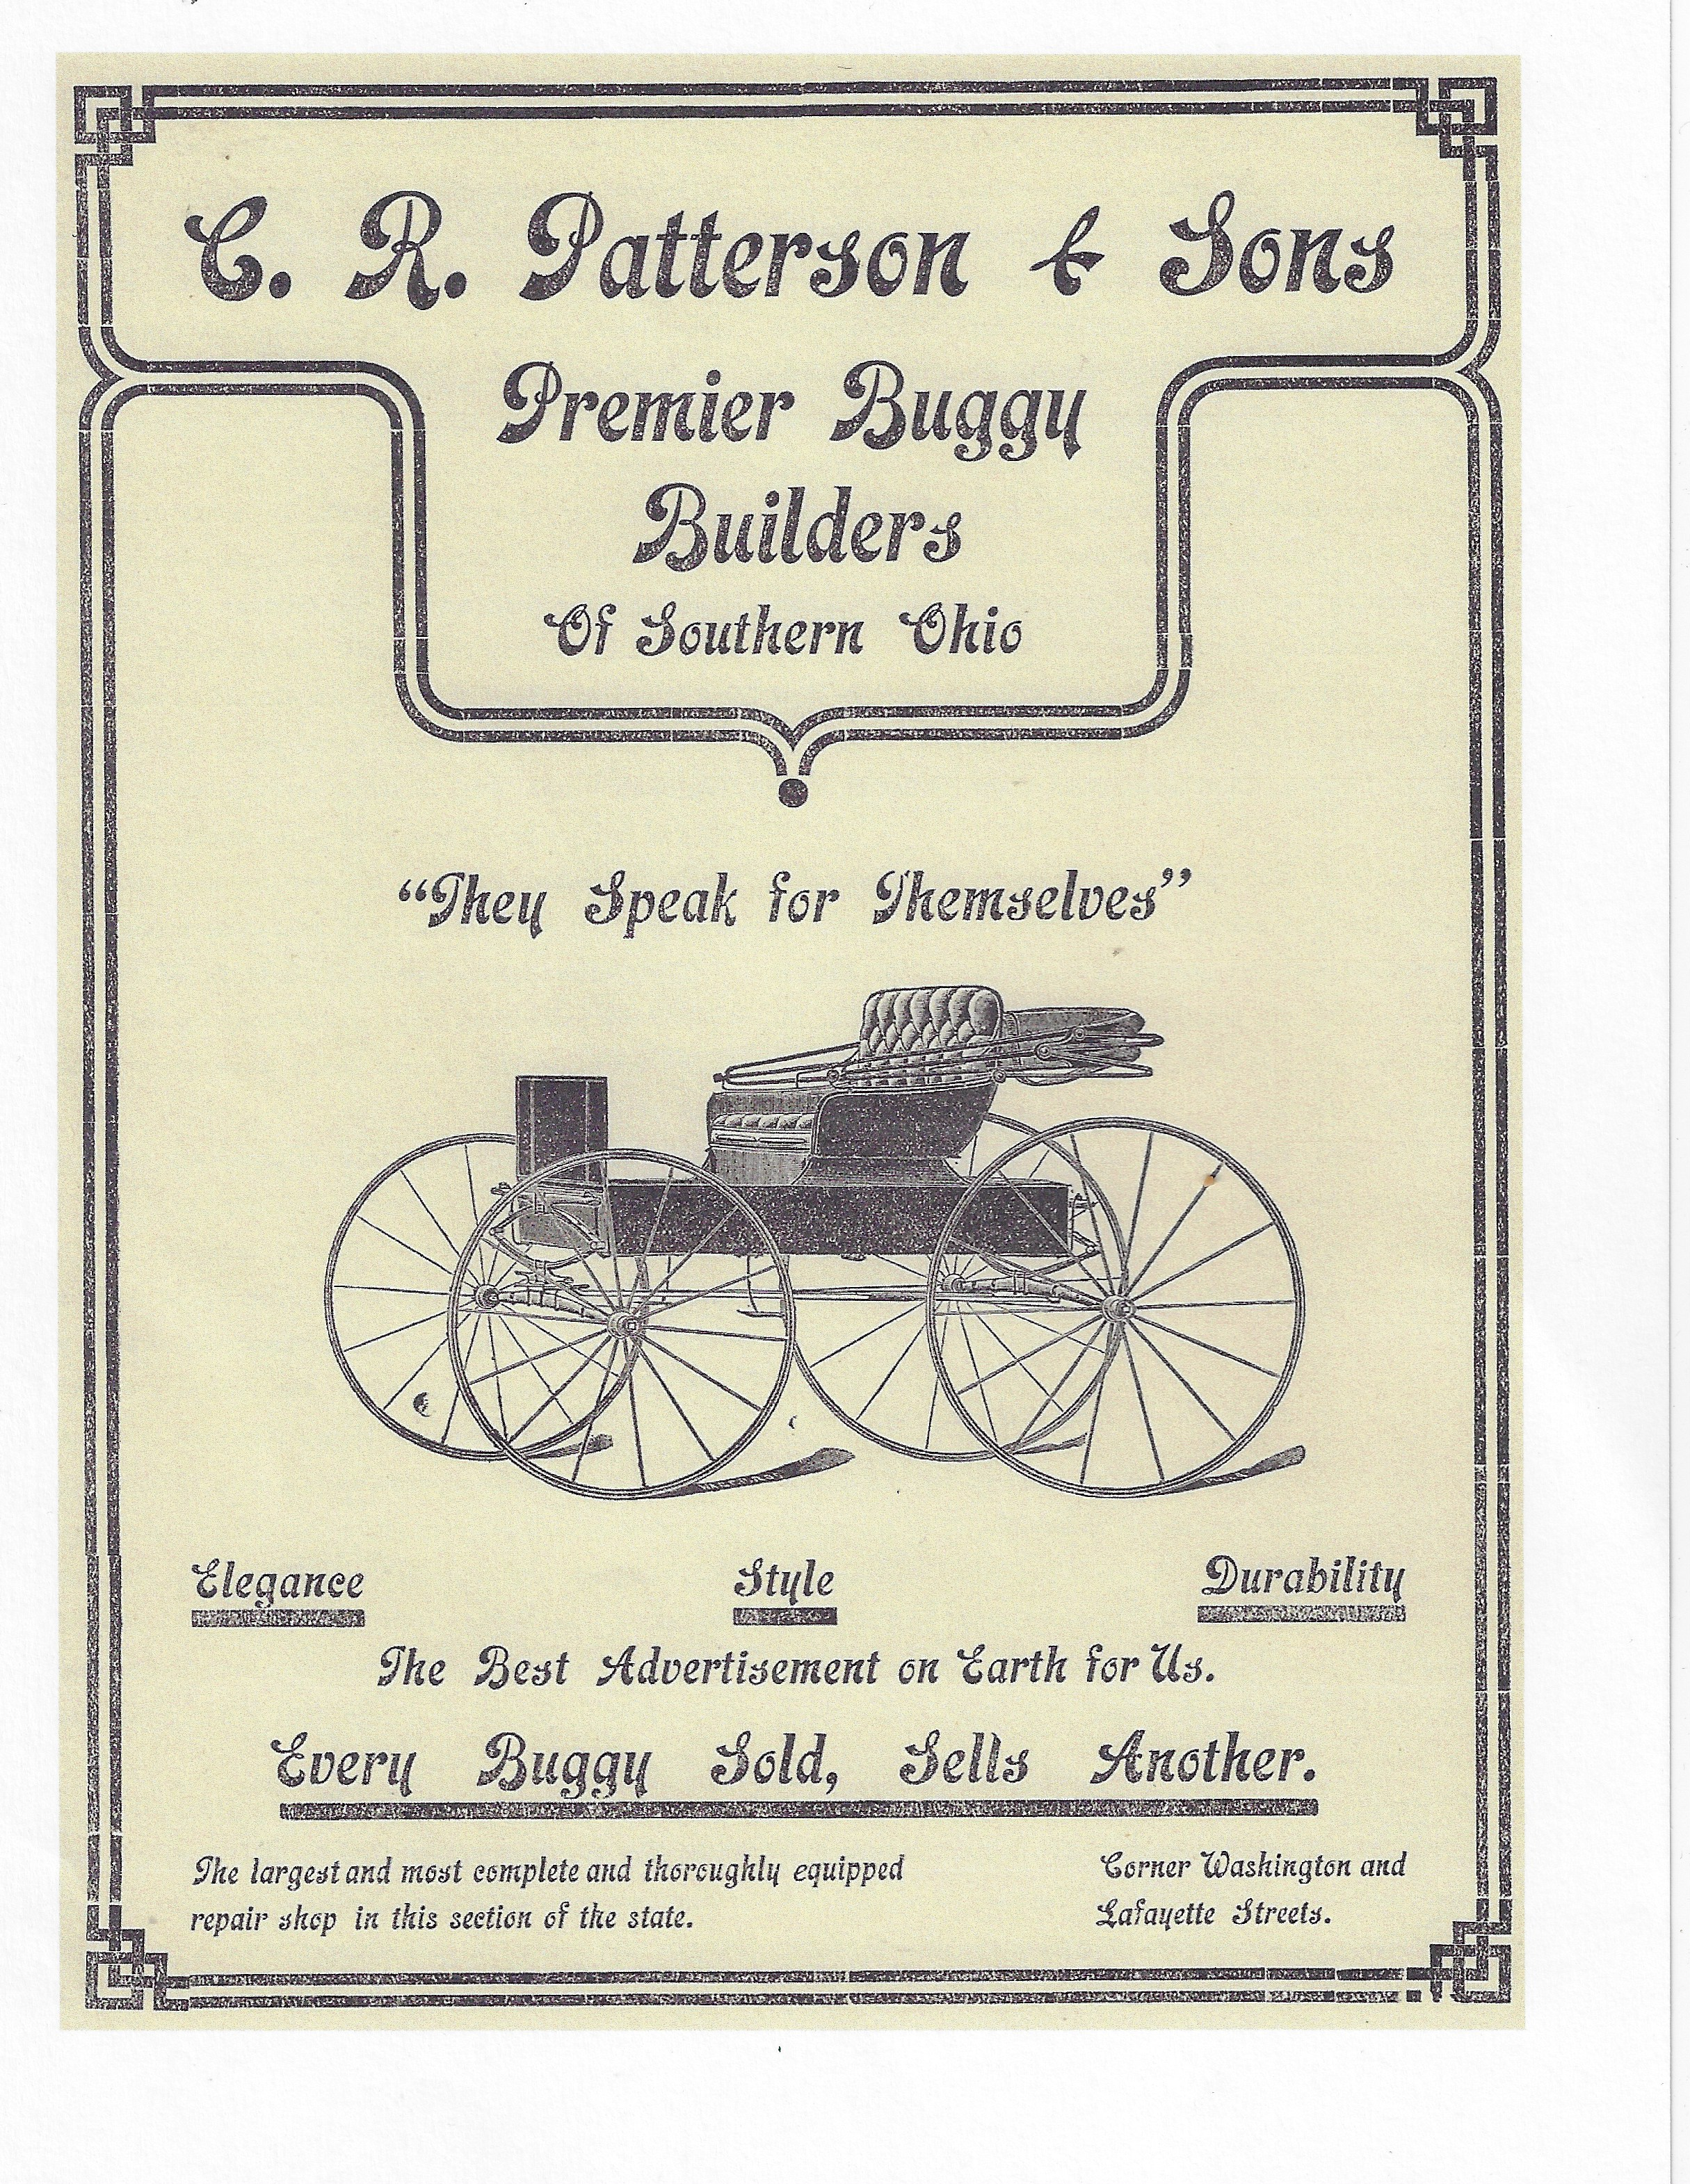 """An advertisement in The Greenfield Republican 1902 Holiday Edition. From the accompanying article: """"The news spread abroad 'that you get your money's worth at Patterson's.' Gradually the farmers got into the habit of coming into Patterson's and giving orders for buggies. They found them just as good as those made in the mammoth factories of Cincinnati, Columbus, and South Bend, and besides the prices were lower and there was no freight and charges bill to pay. As the years went by and business grew, larger quarters were found necessary, until now the factory and show rooms on Washington streets are models of convenience and spaciousness."""""""